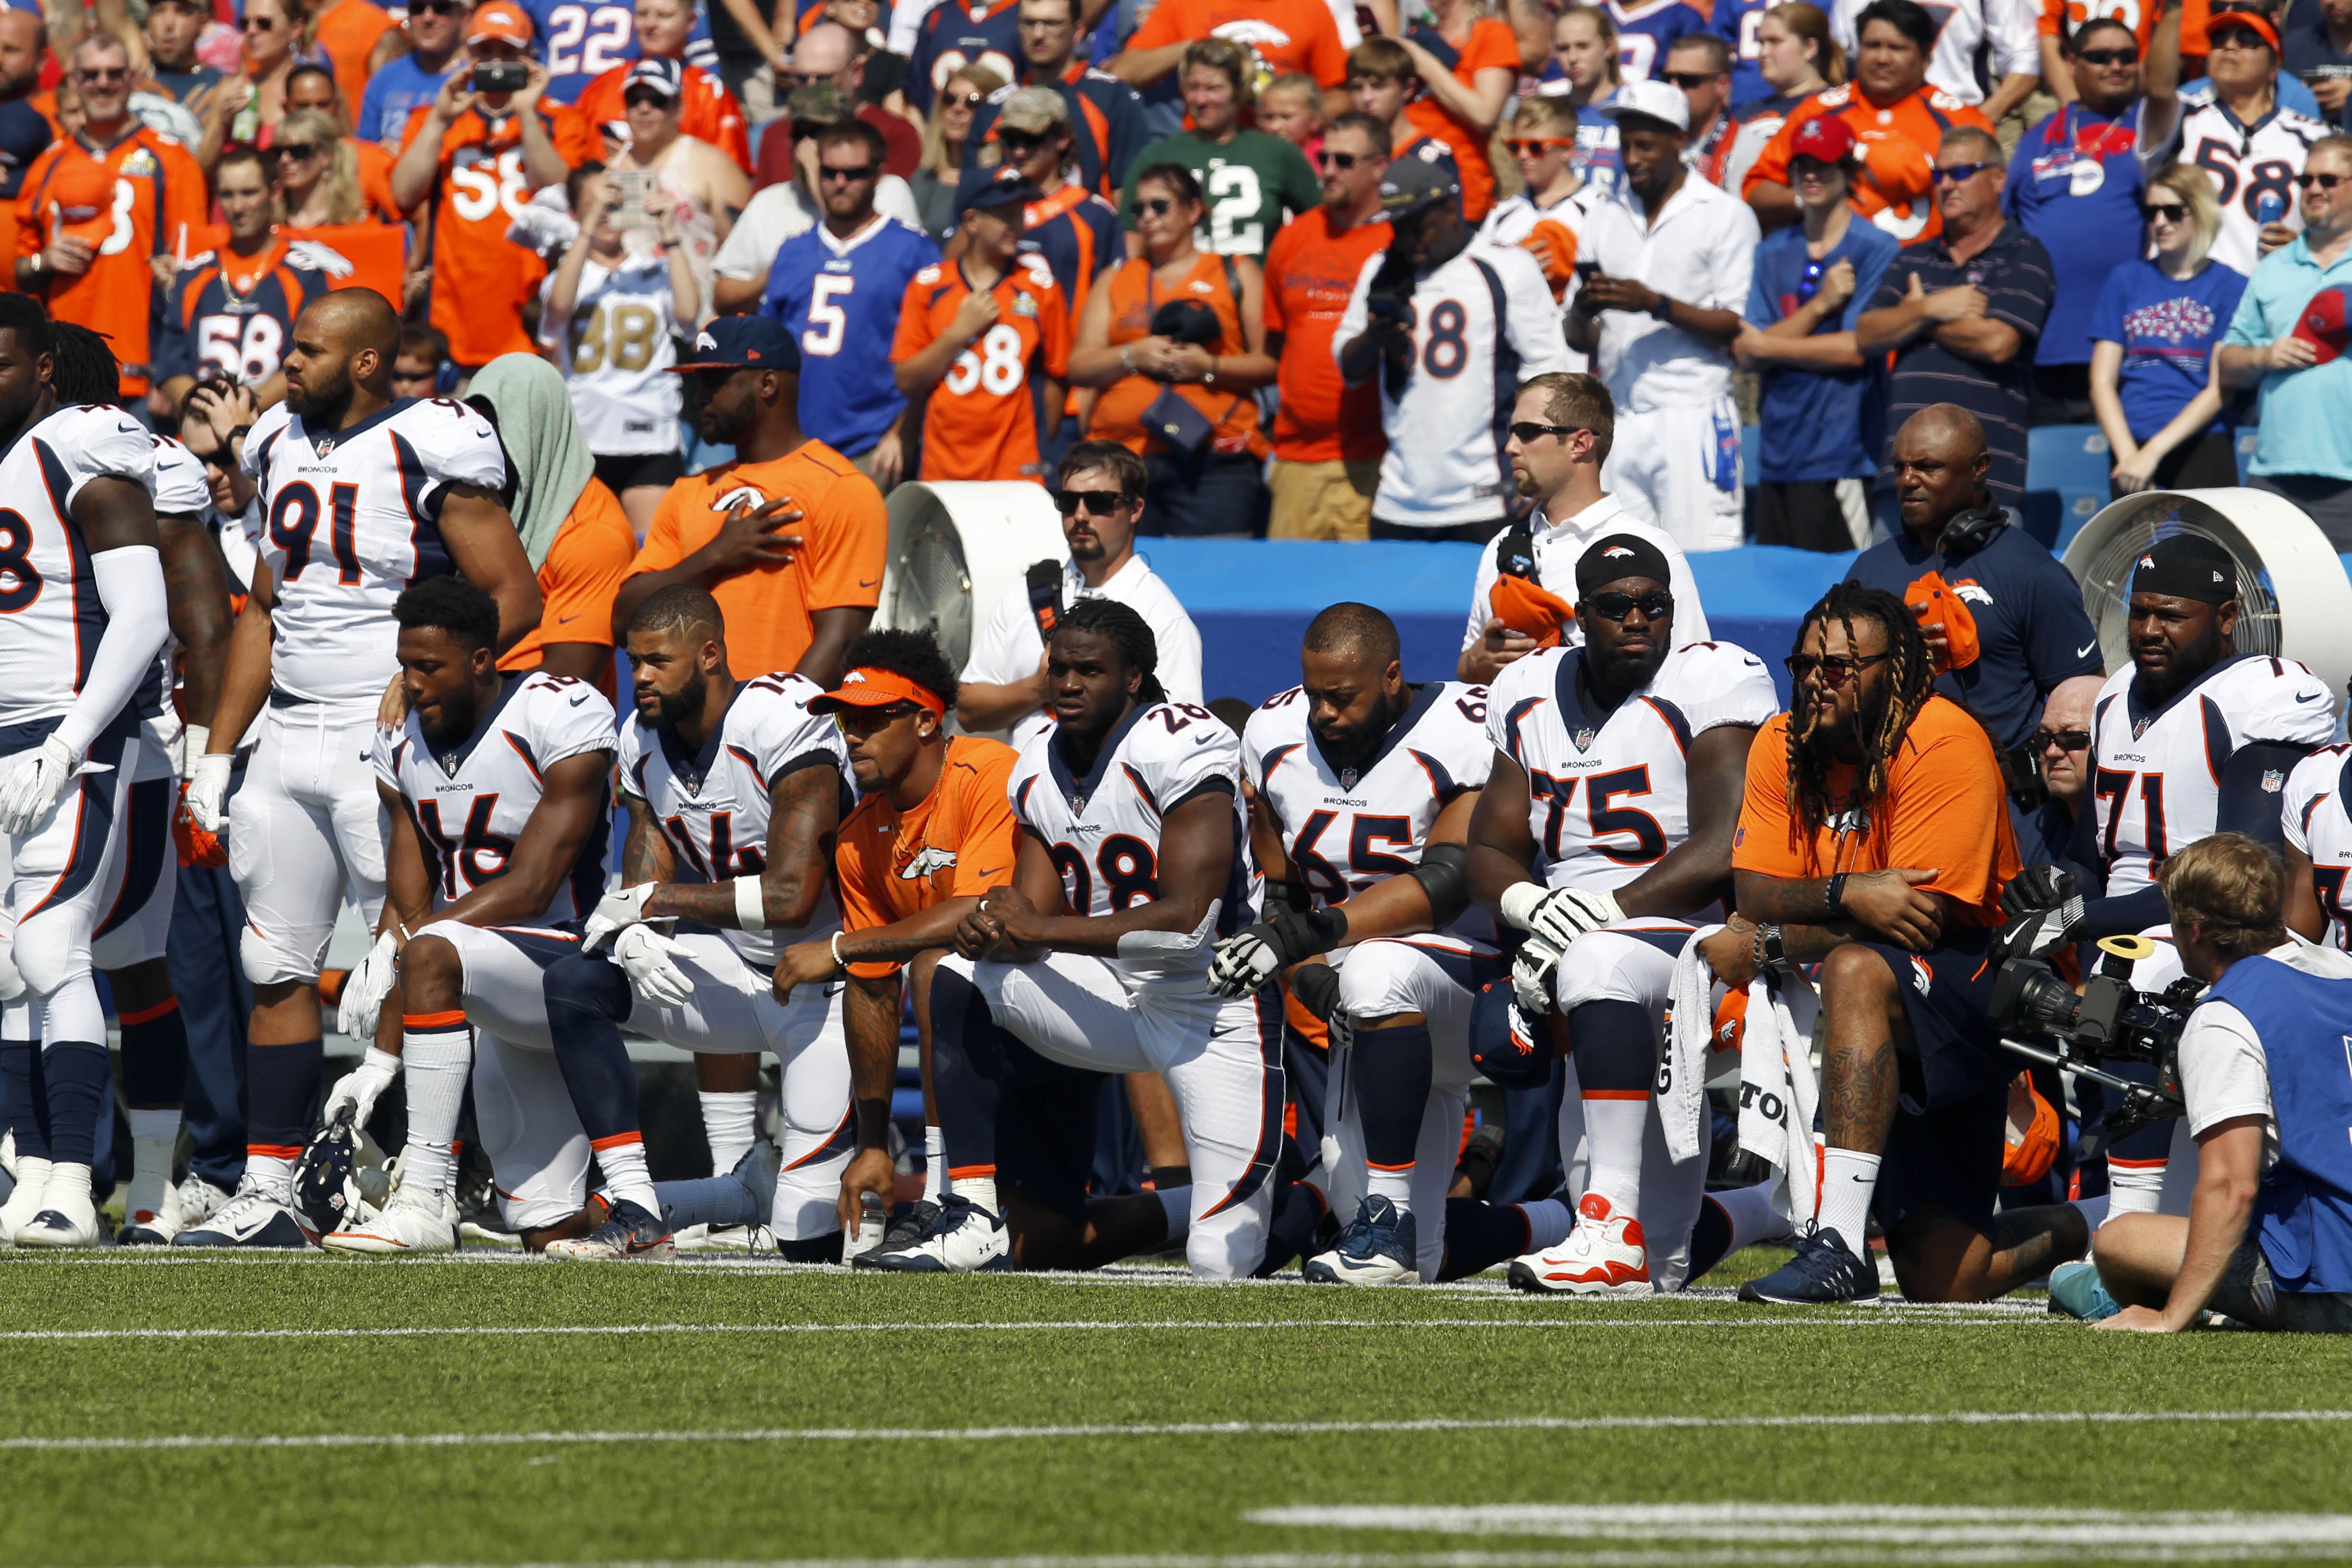 Denver Bronco players kneel in protest during the National Anthem before a game against the Buffalo Bills